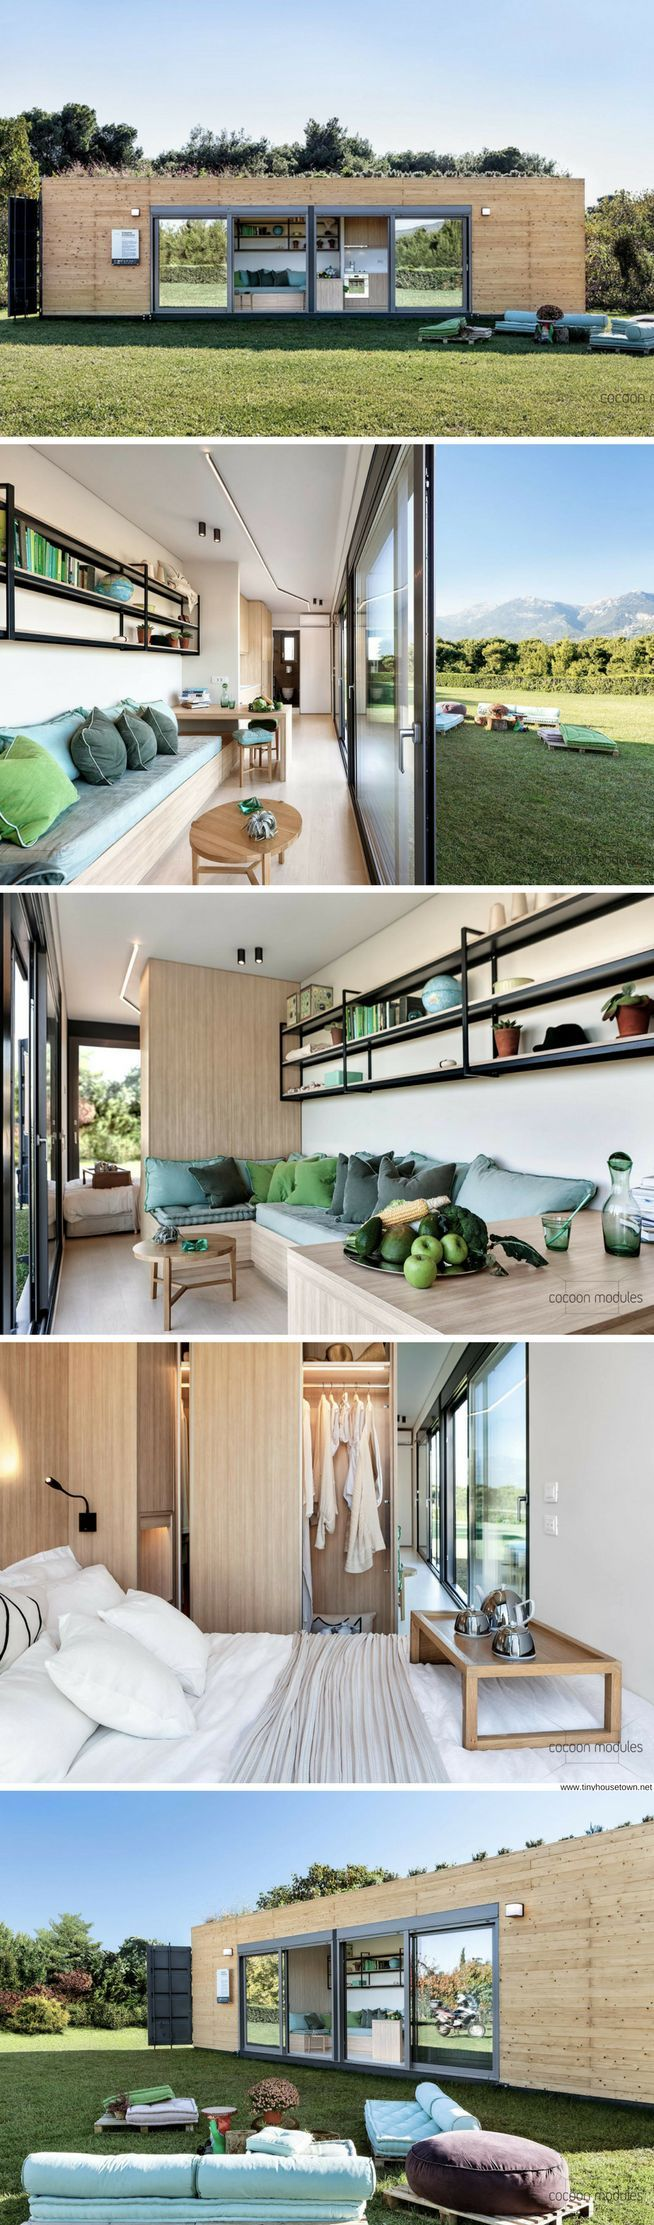 An eco frindly and space saving shipping container home from ...